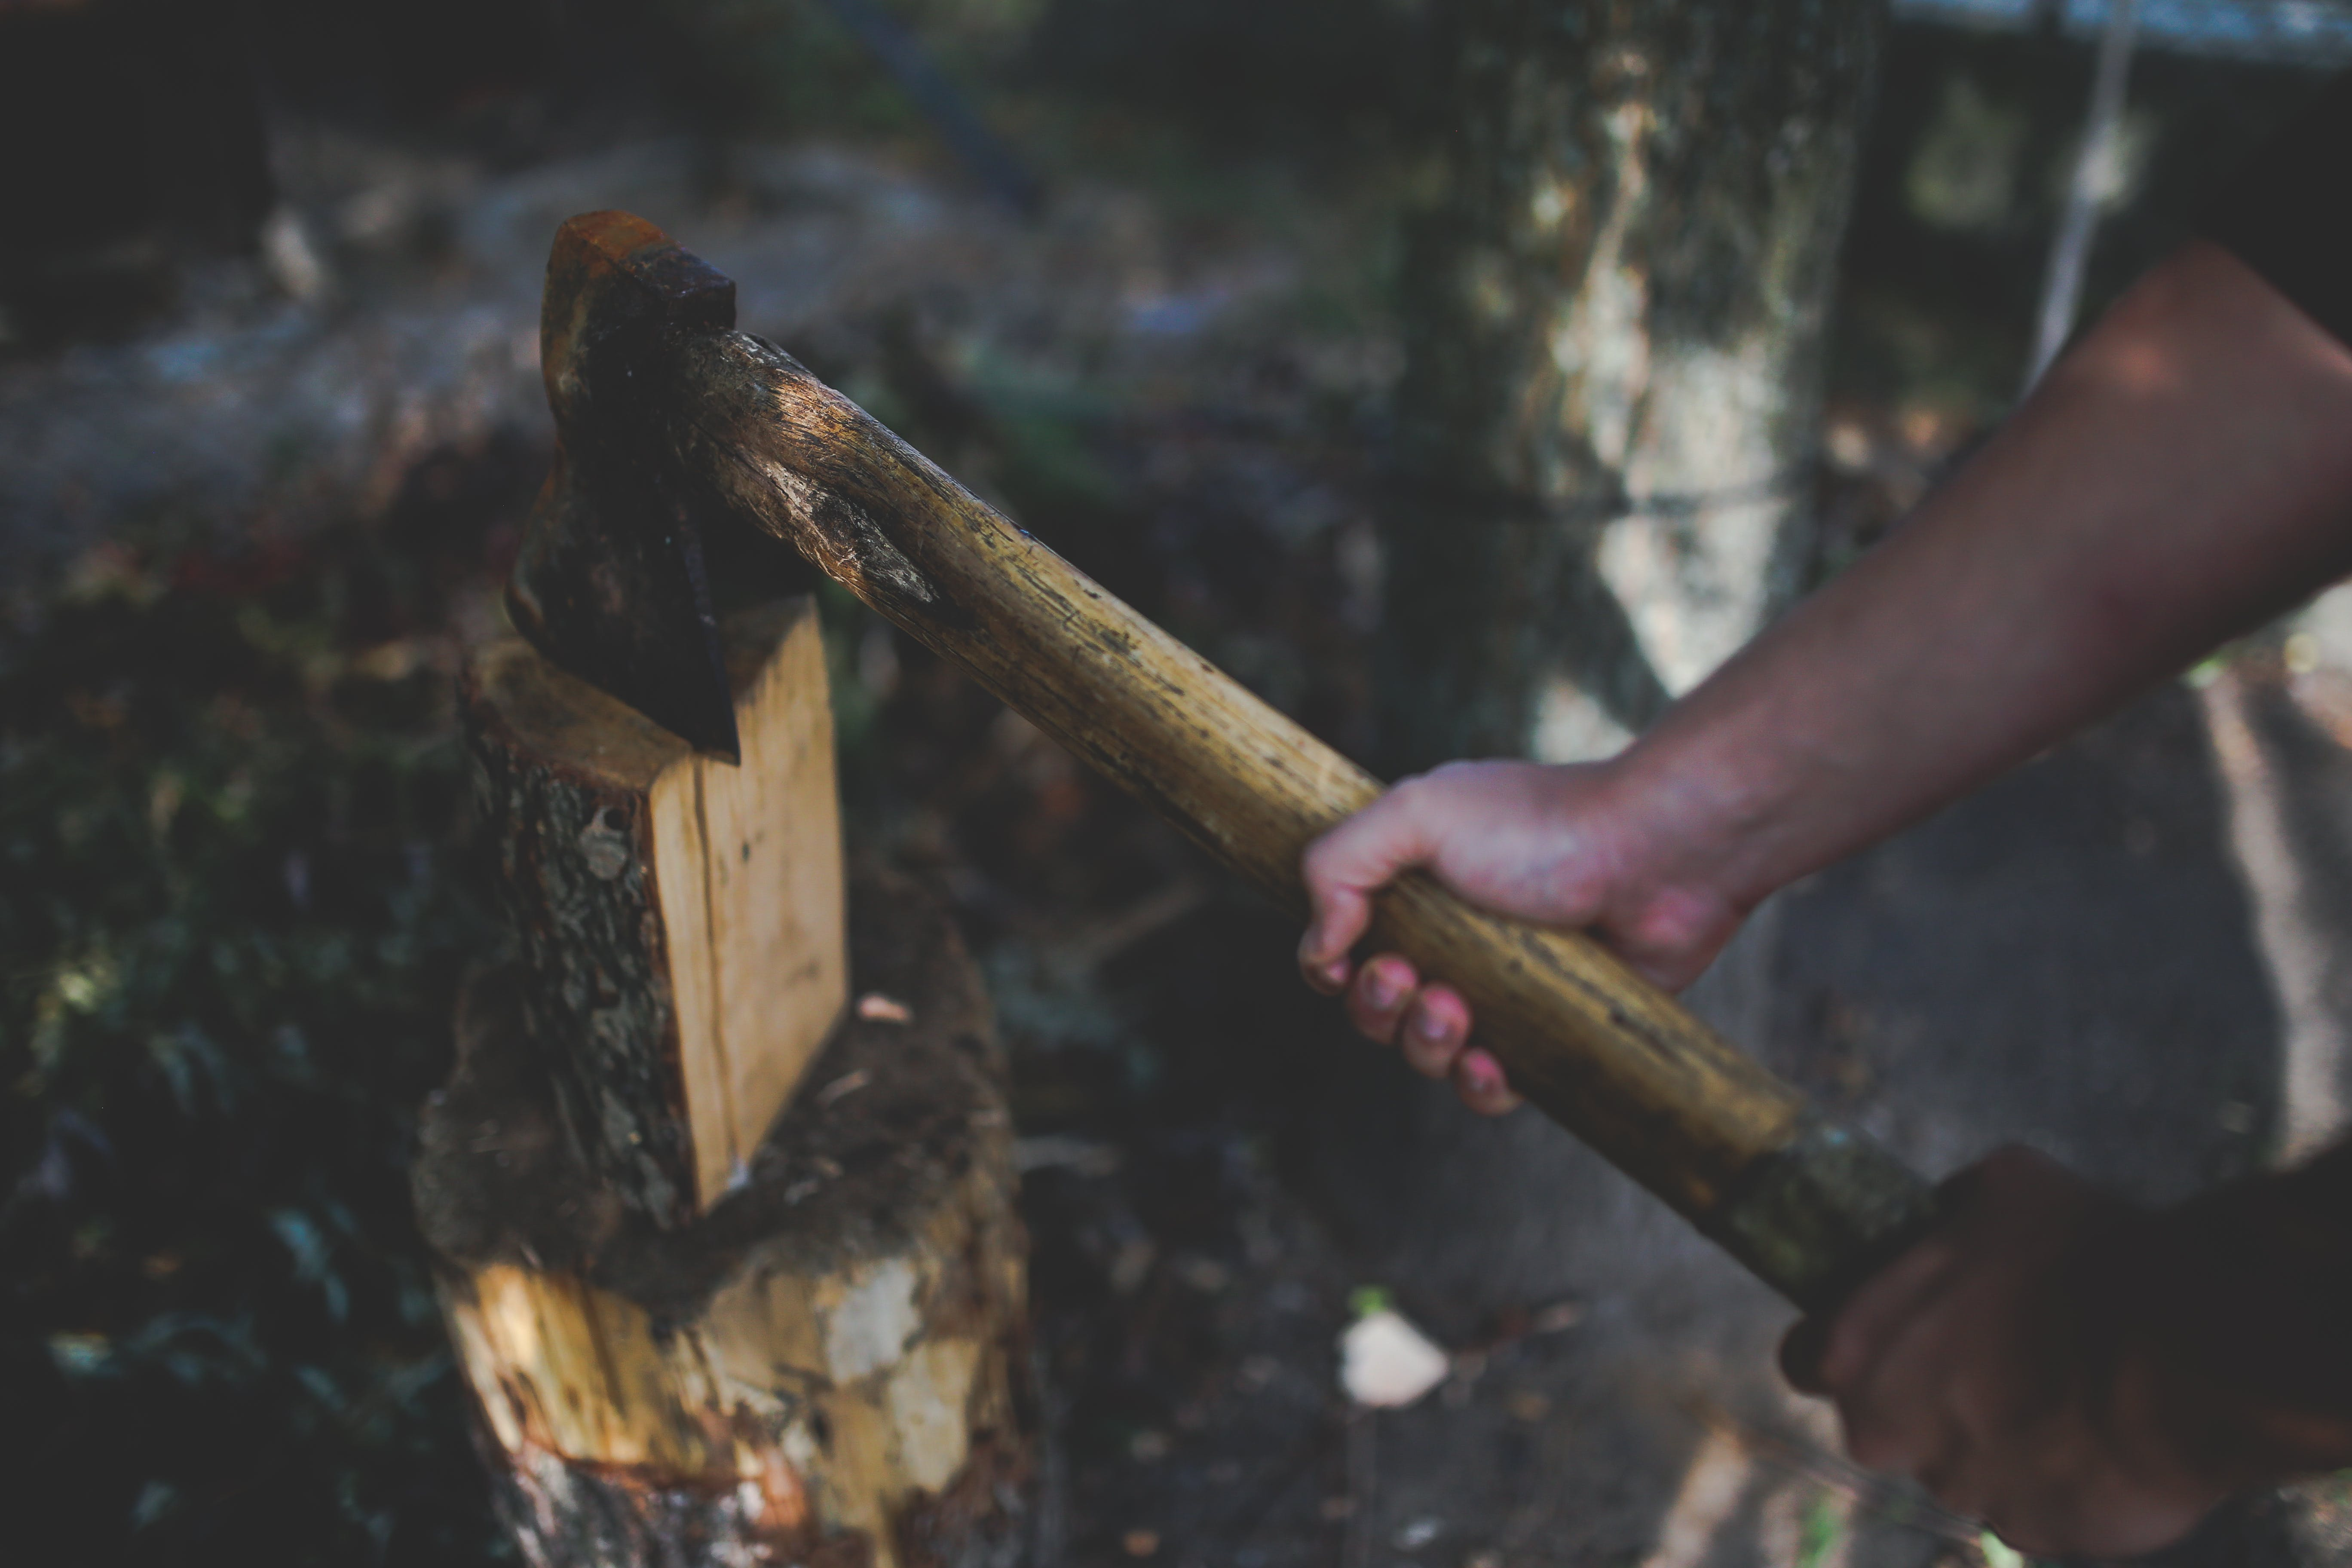 A man holds an old, worn axe